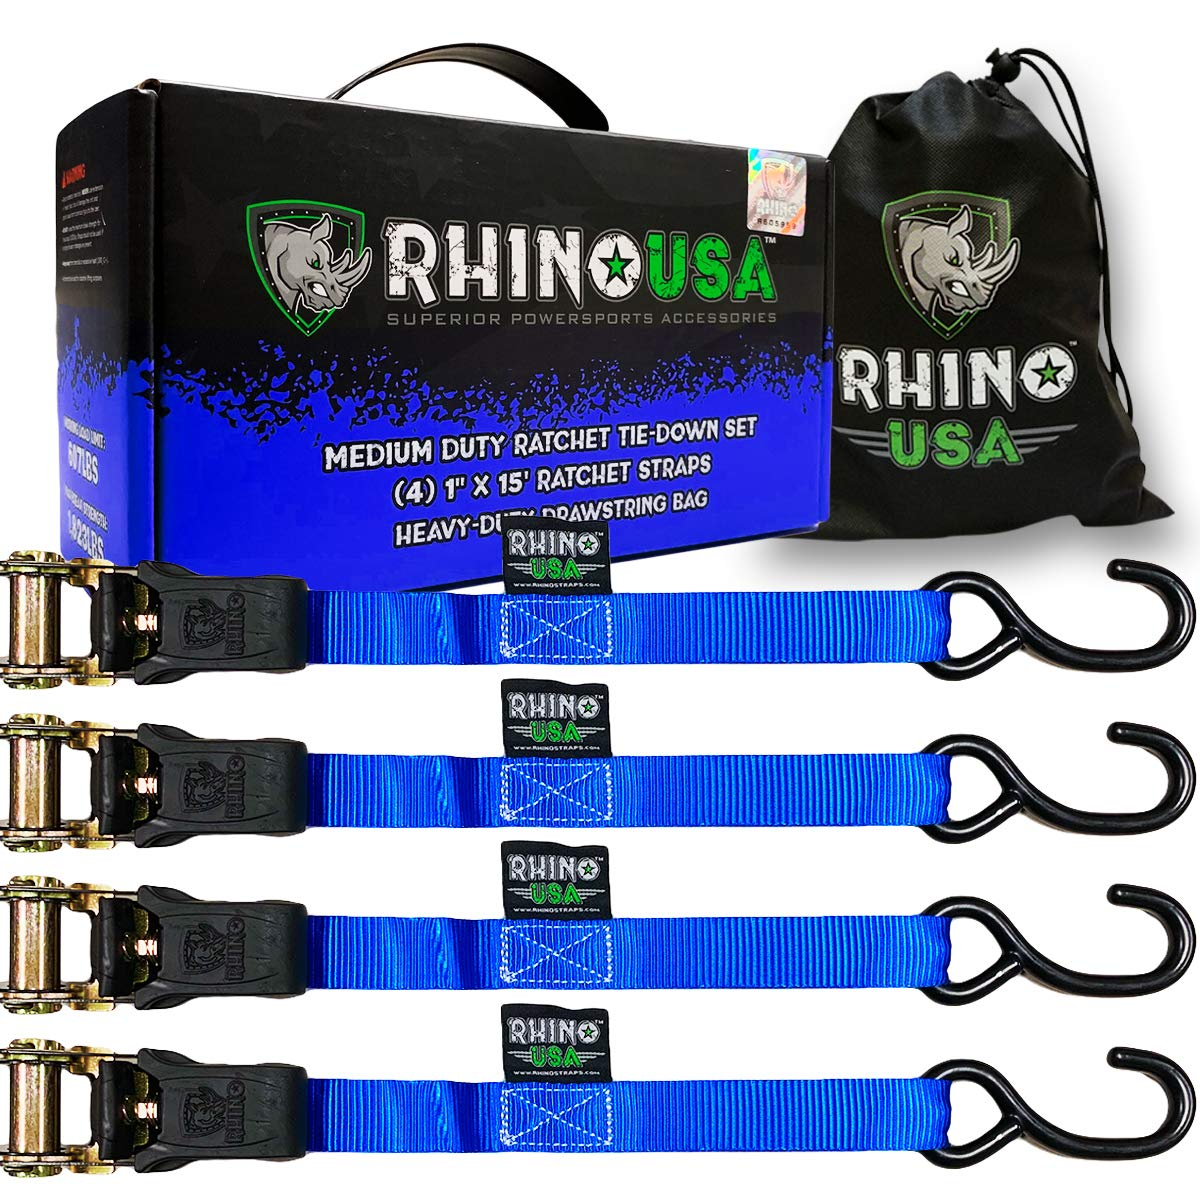 Includes Premium 1 x 15 Rachet Tie Downs with Padded Handles BLACK 4 Best for Moving Securing Cargo - 1,823lb Guaranteed Max Break Strength 4PK RHINO USA Ratchet Tie Down Straps